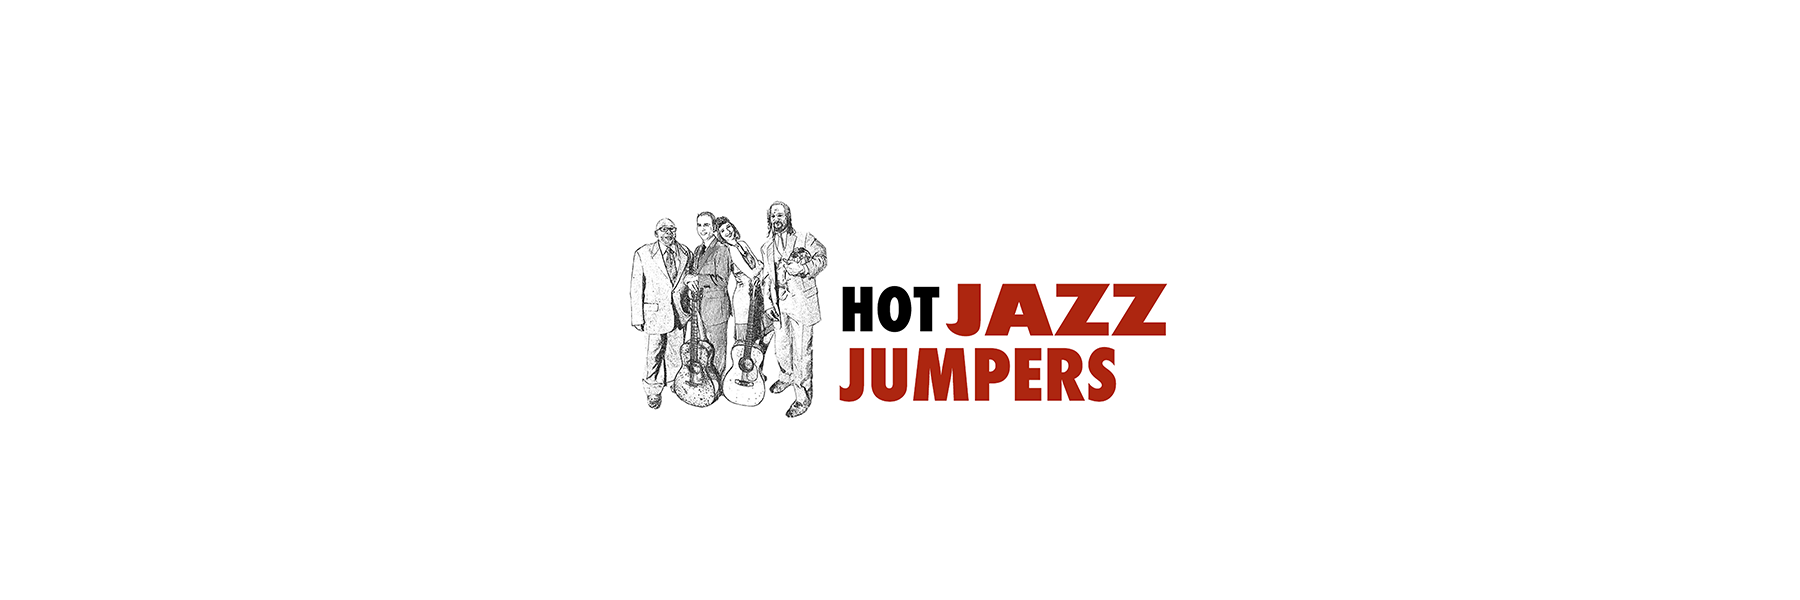 hot jazz jumpers logo